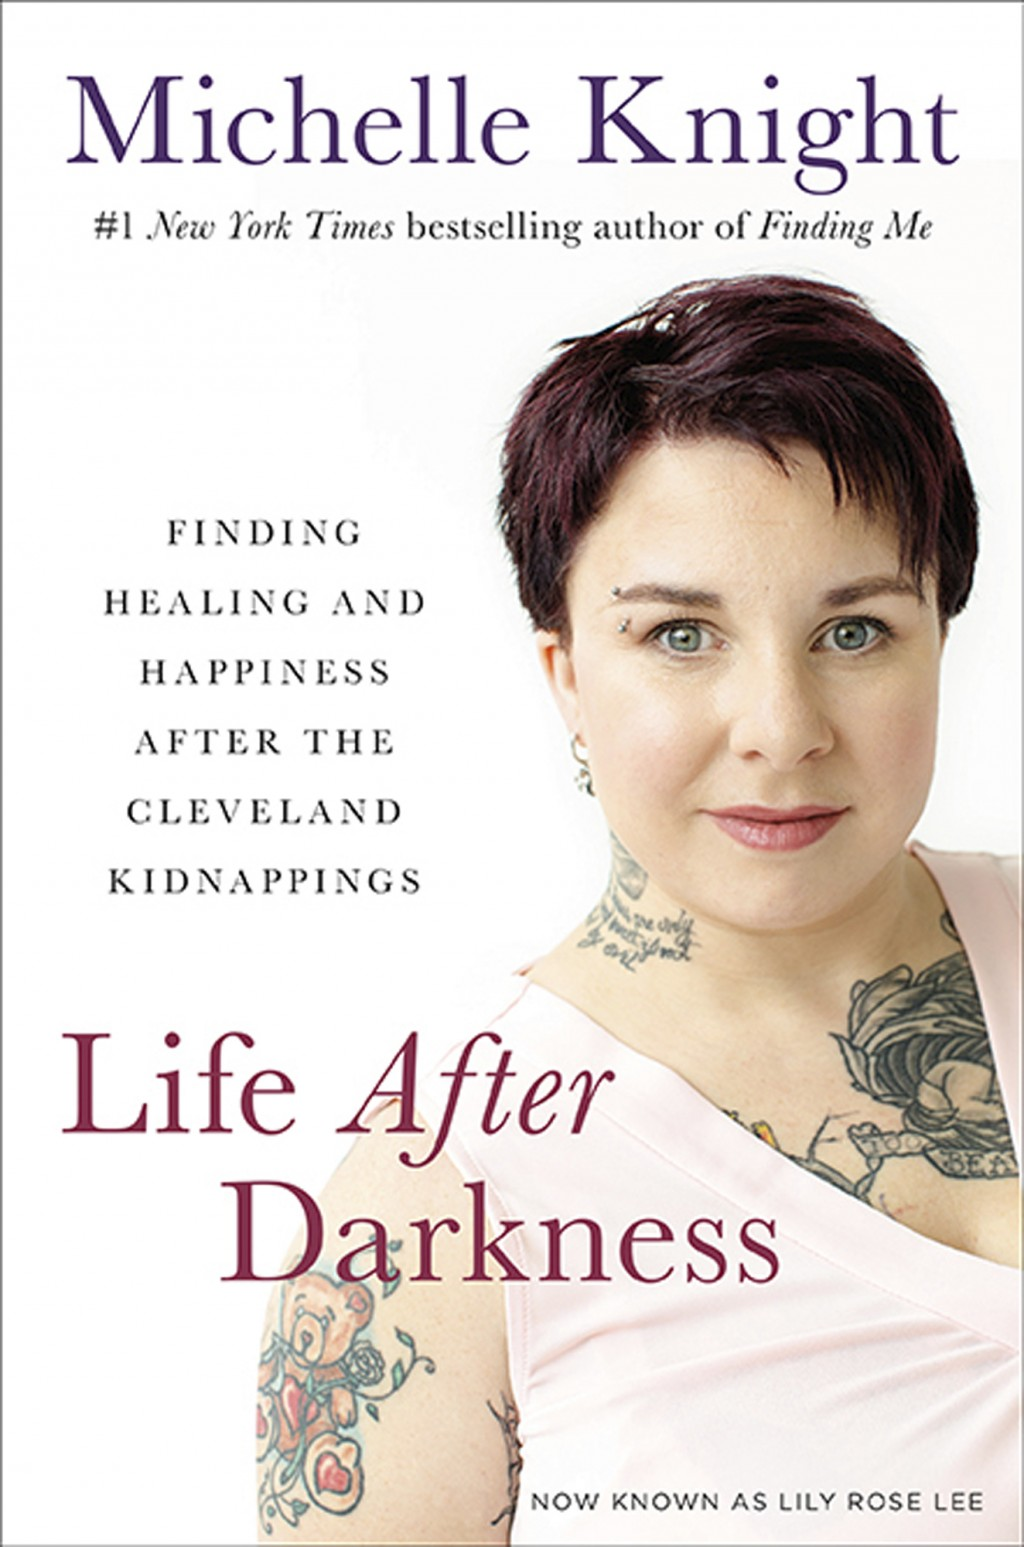 This image provided by Hachette Books shows the cover of Michelle Knight's book Life After Darkness. Five years after being rescued from a decade-long...